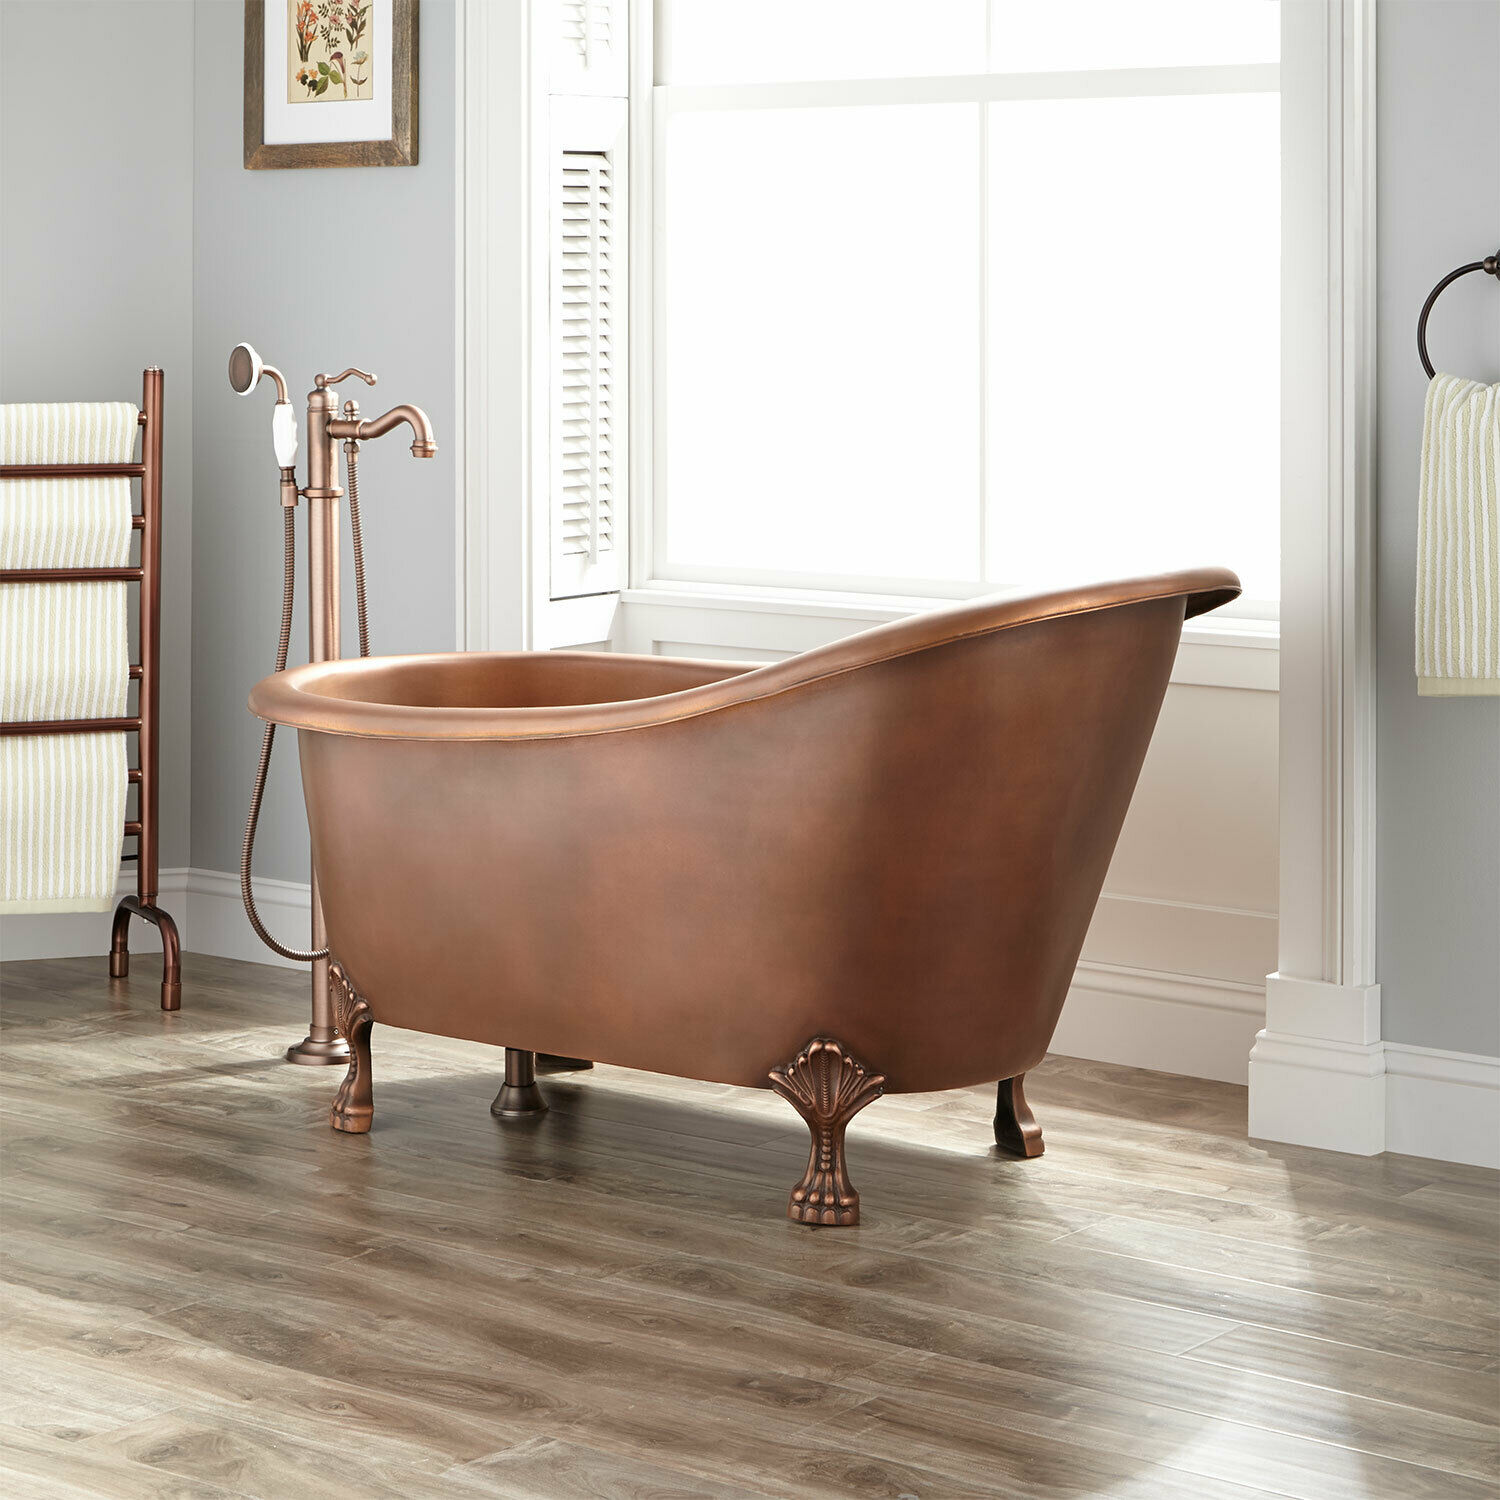 Signature Hardware 54 Norah Copper Slipper Clawfoot Tub Rolled